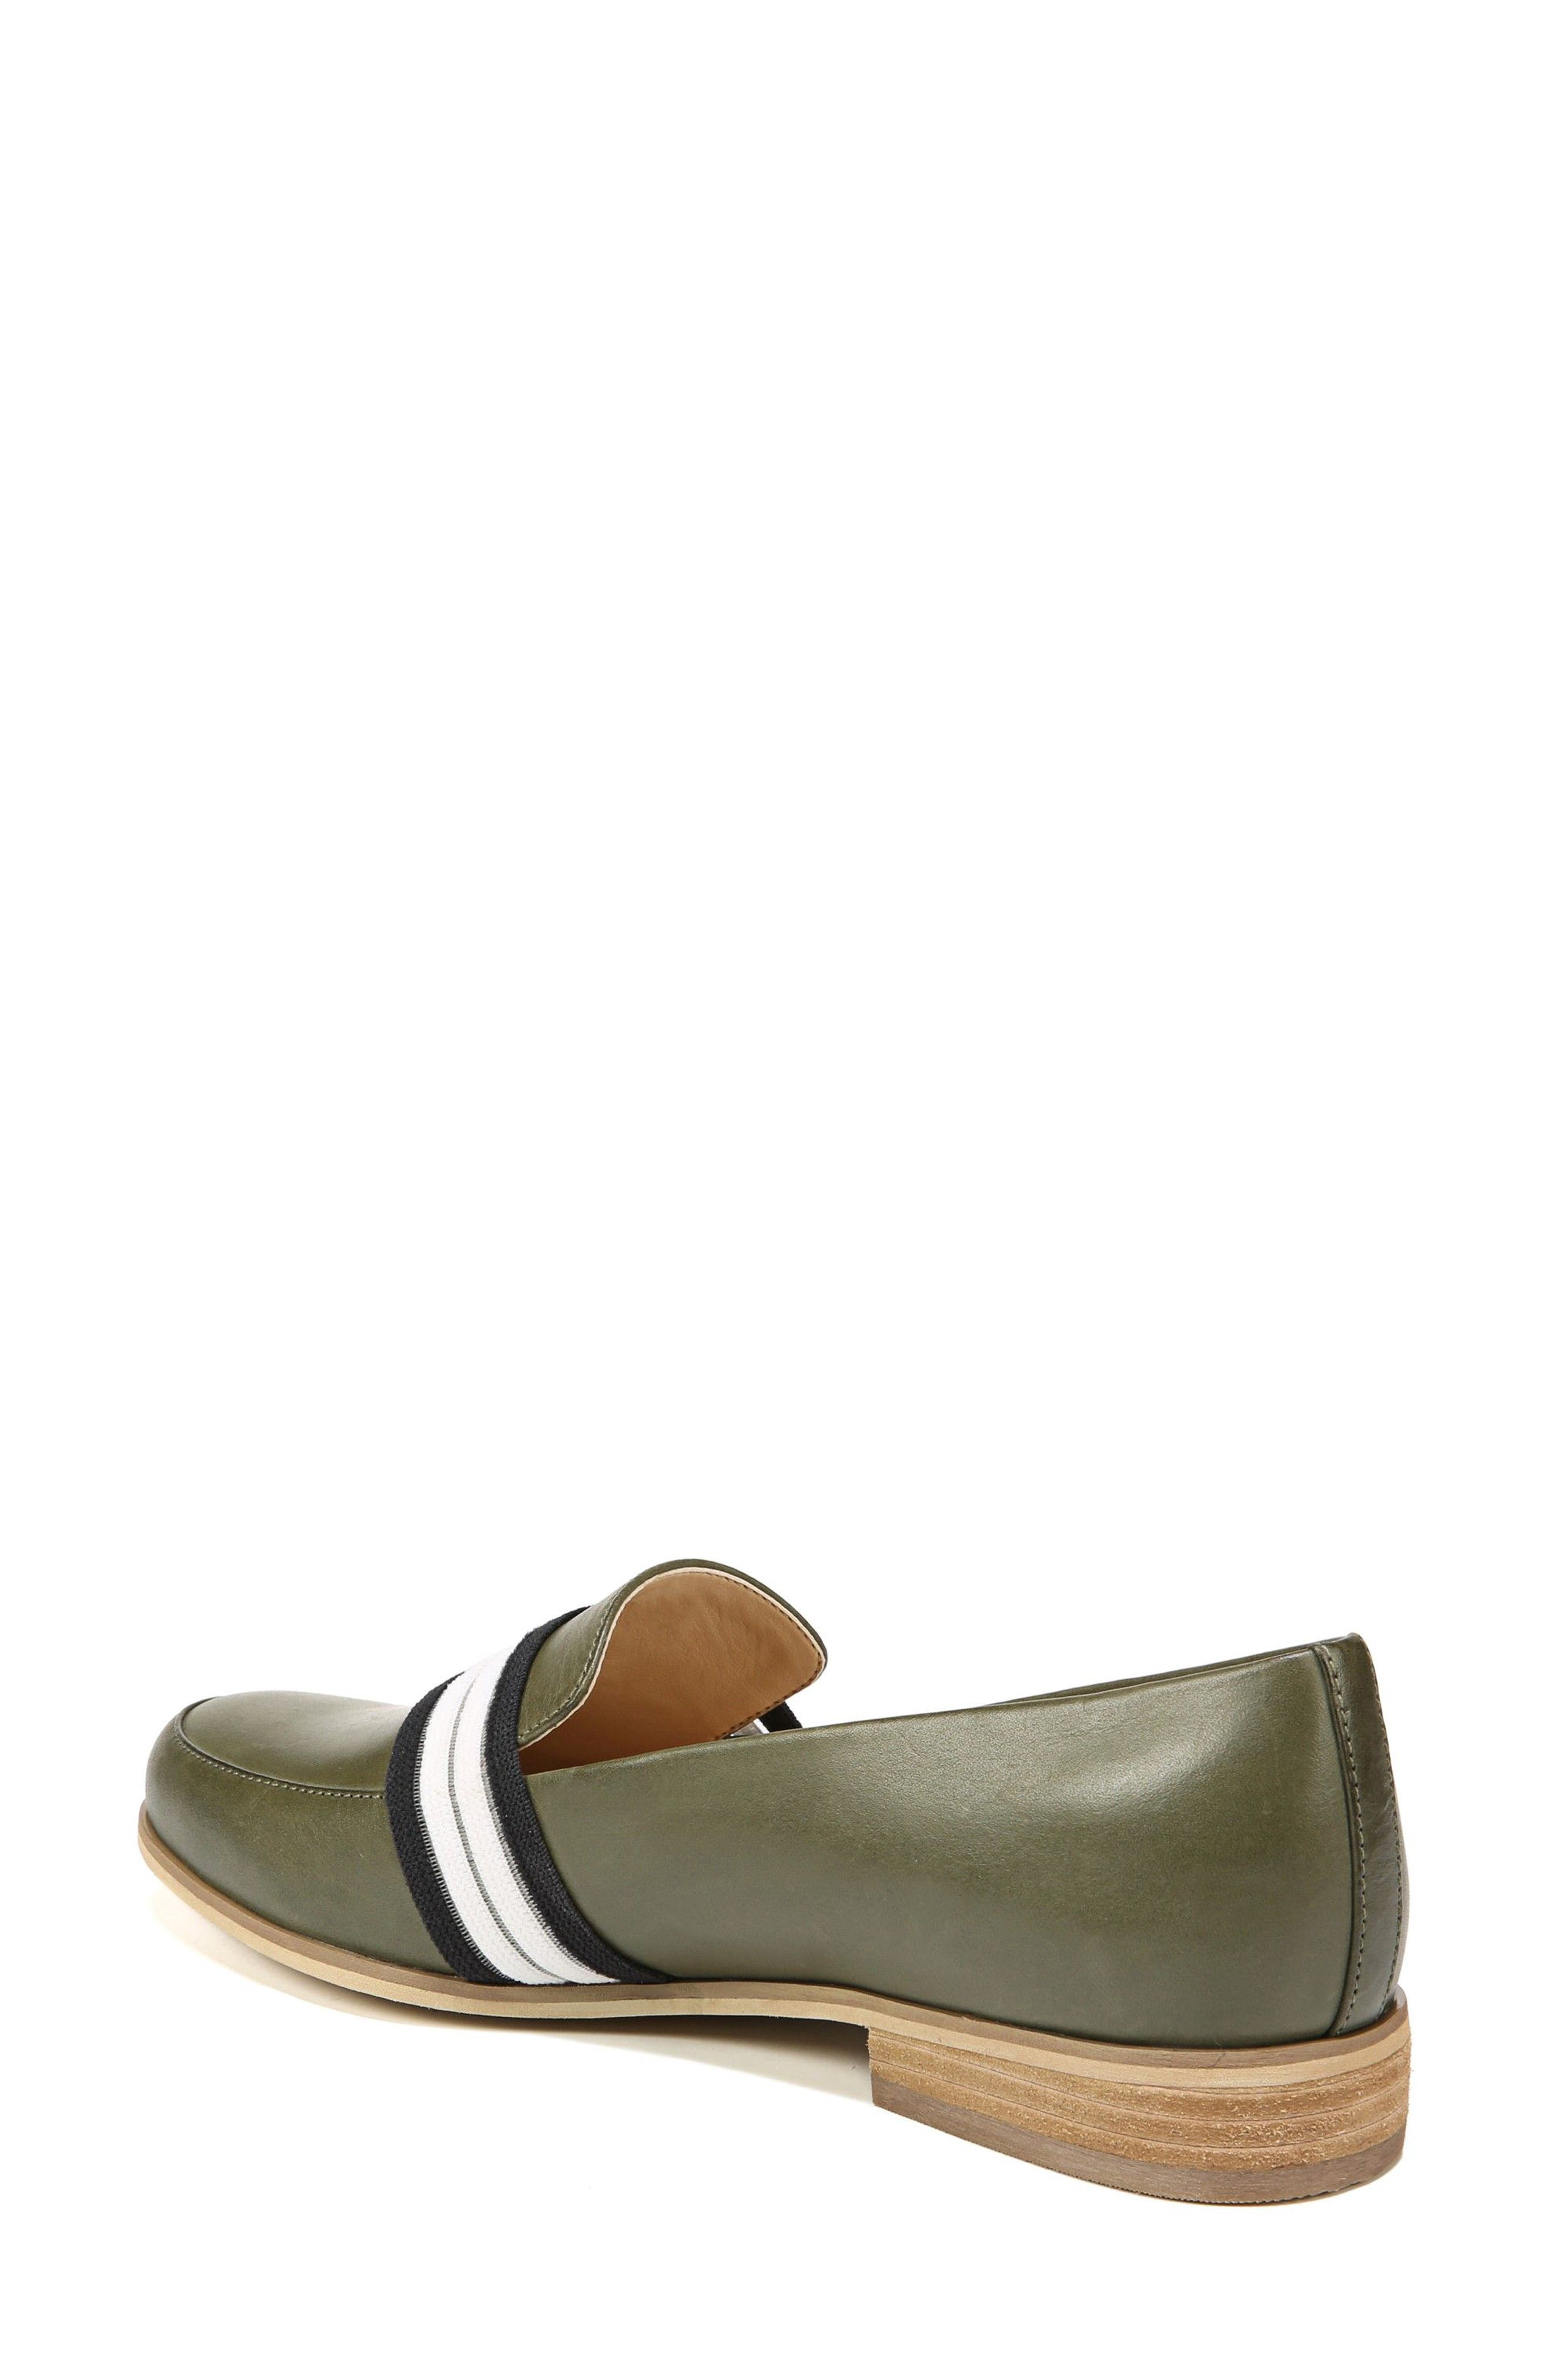 Everett Band Loafer,                             Alternate thumbnail 2, color,                             Green Leather